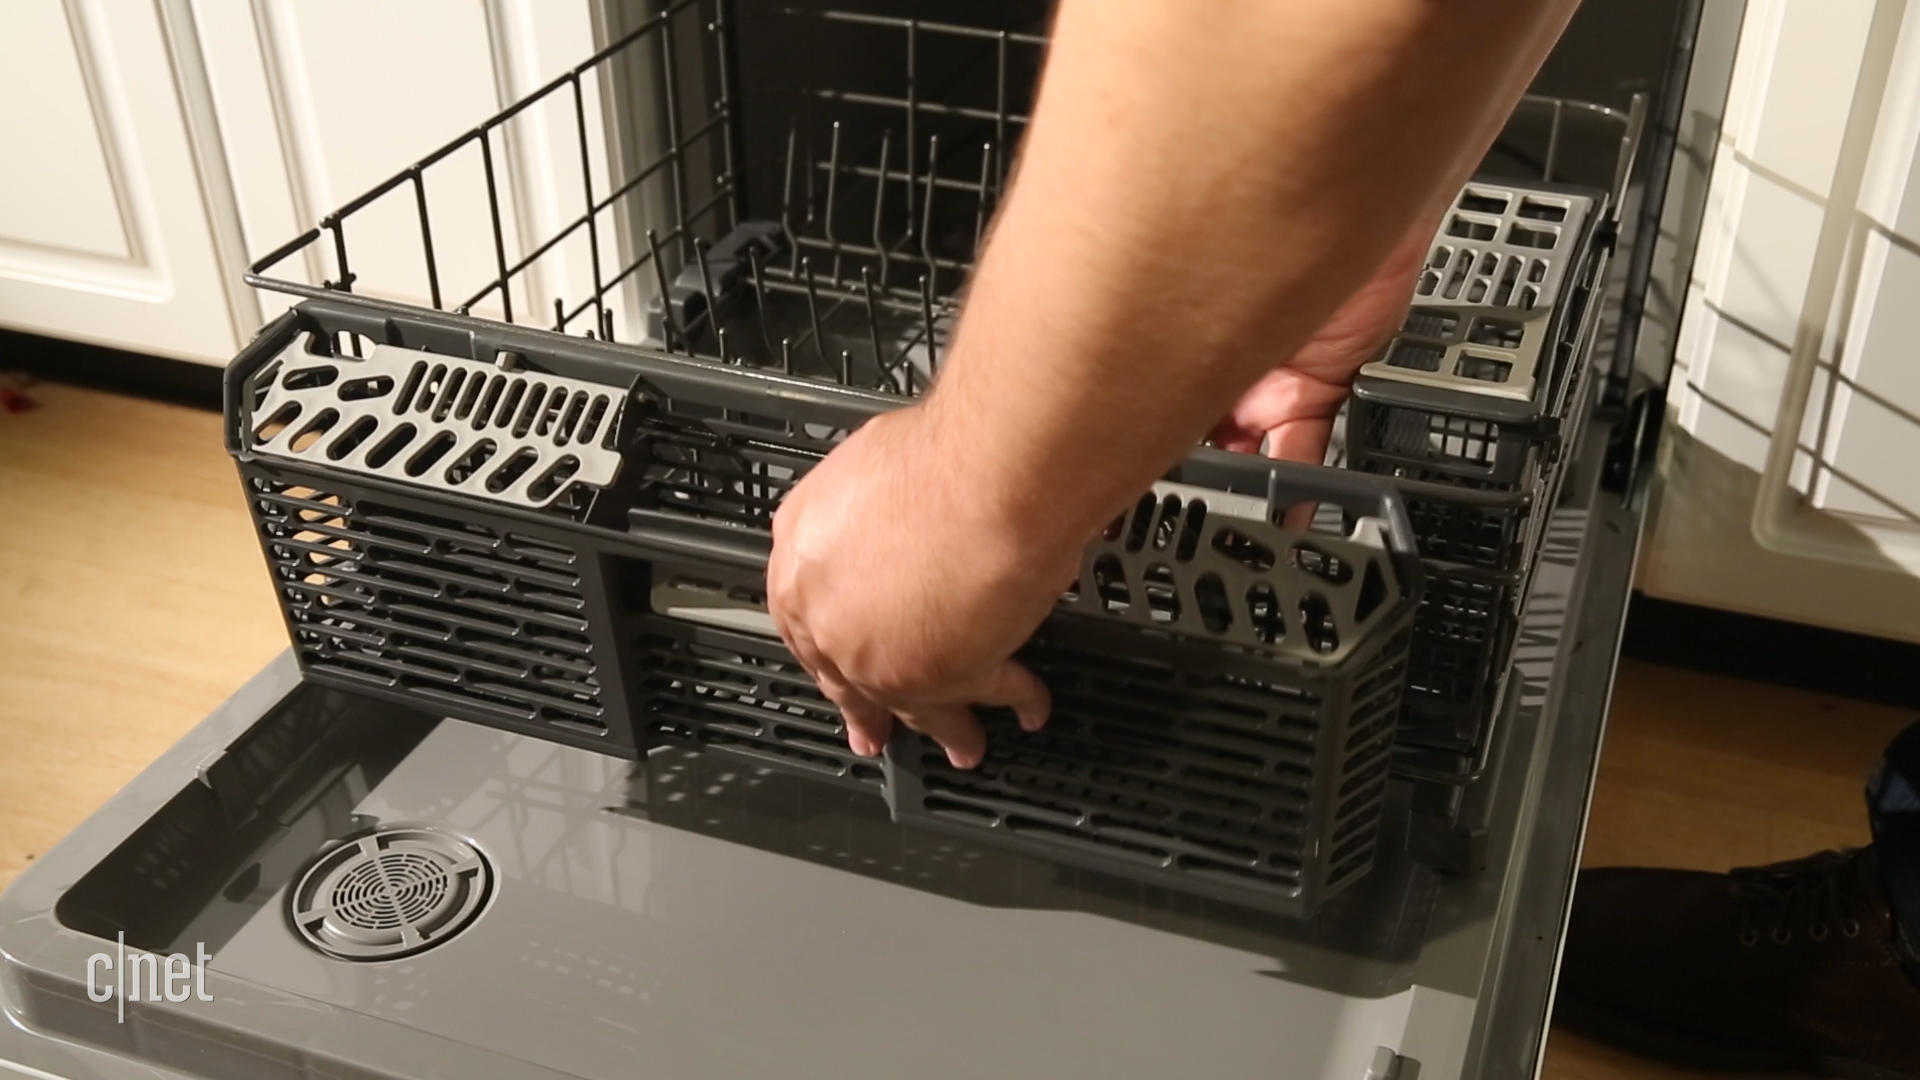 Video: Dirt cheap GE GDF520PGJWW dishwasher handles its business